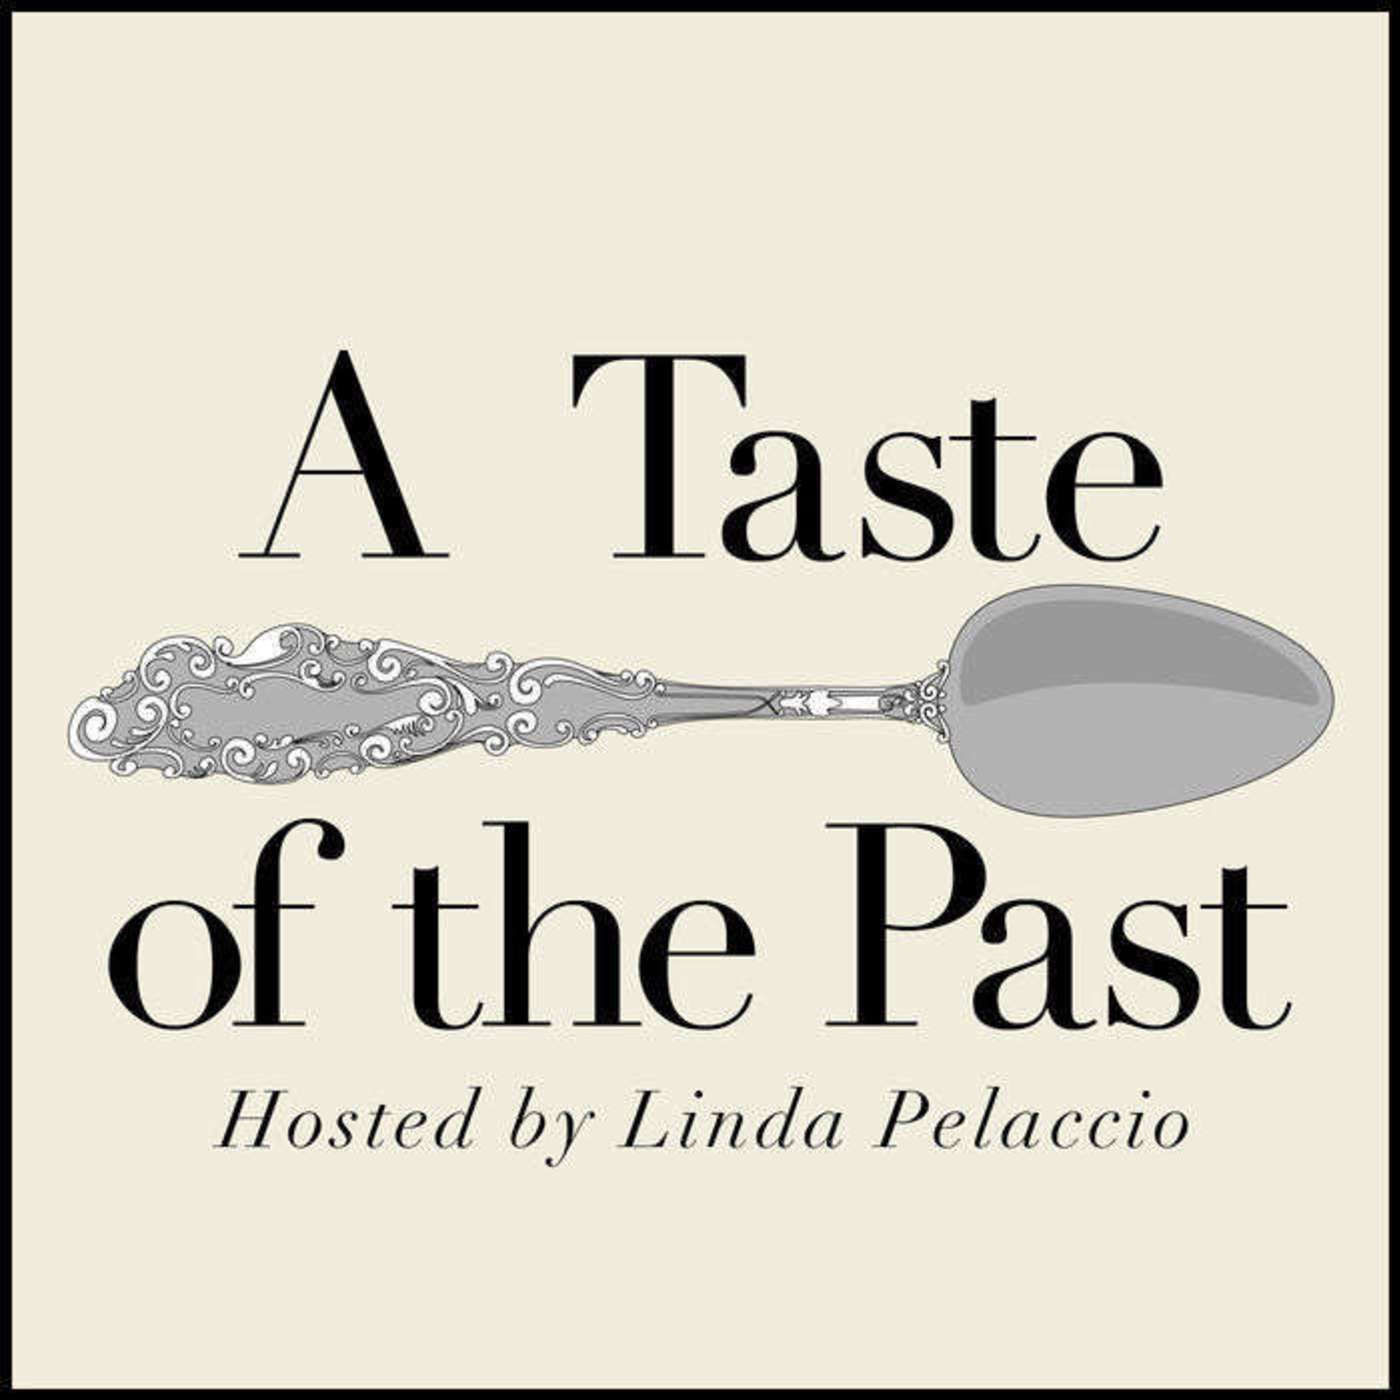 Episode 34: Some Spicy History with Michael Krondl